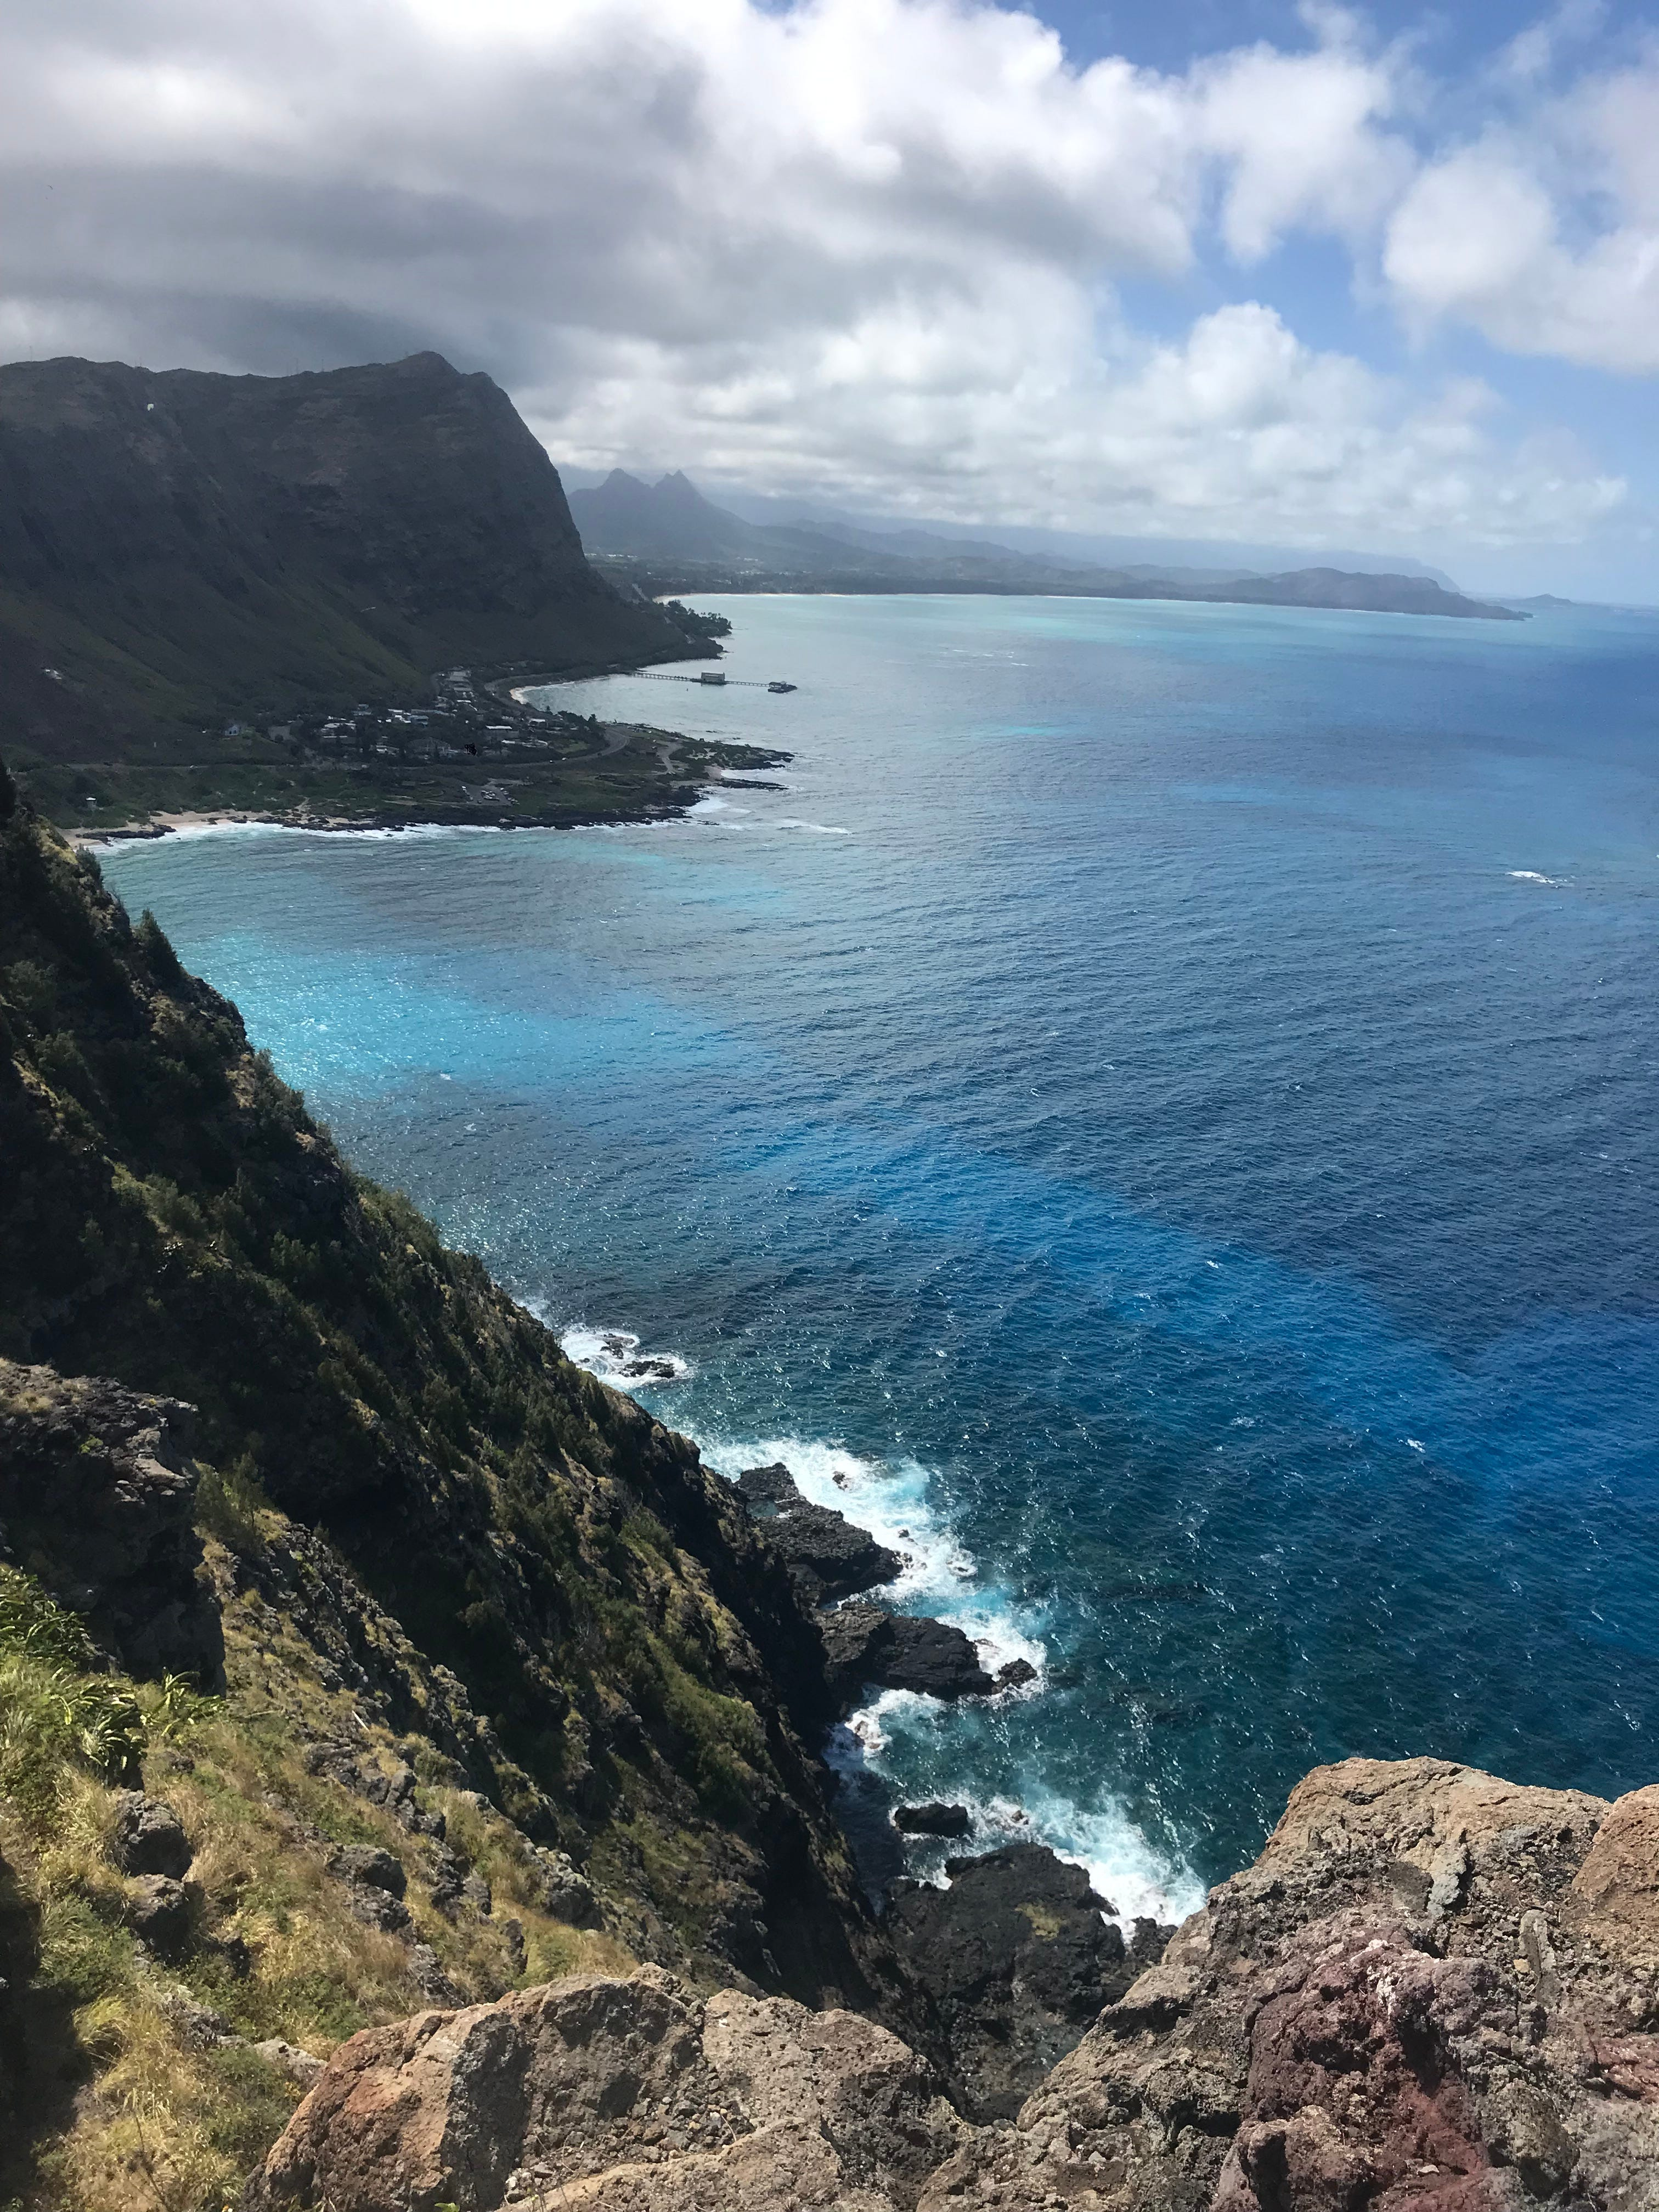 The Makappu Point Lighthouse Trail, just 30 minutes from Waikiki Beach, is a family friendly hike with rewarding views.